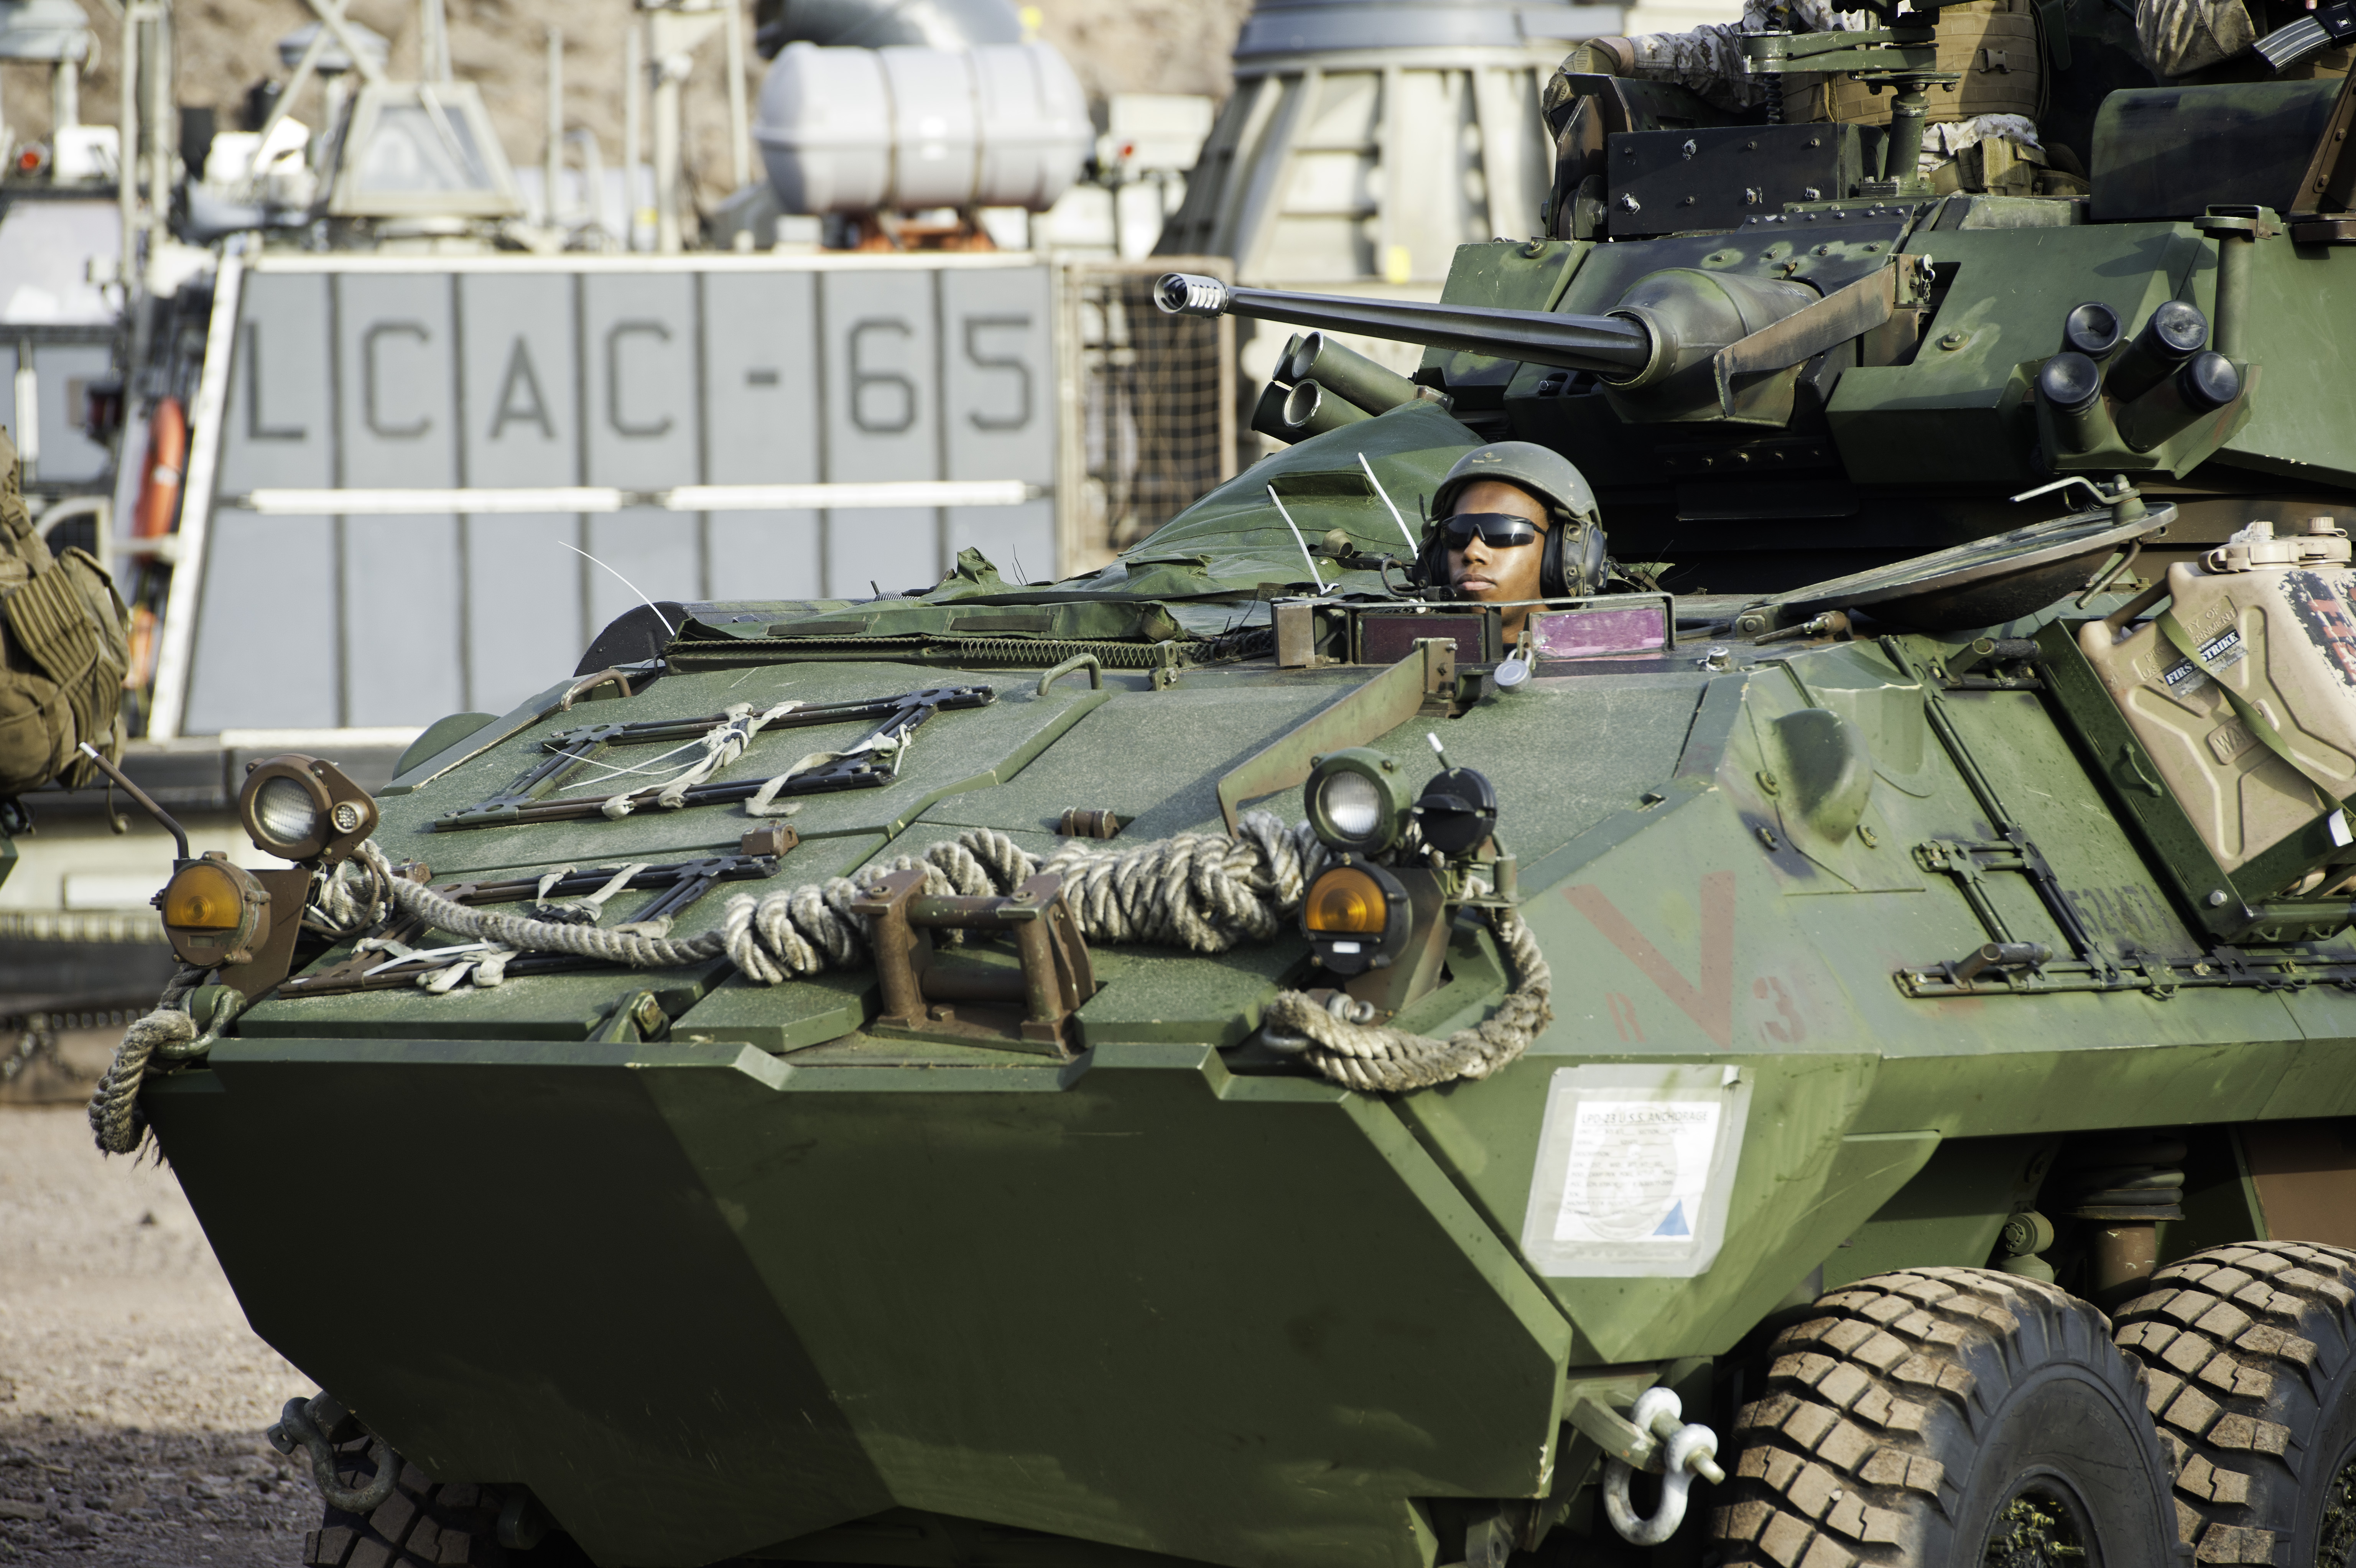 A U.S. Marine Light Armored Vehicle (LAV-25) driver assigned to the 15th Marine Expeditionary Unit, awaits orders after disembarking from a U.S. Navy Landing Craft Air Cushion (LCAC) from the San Antonio-class amphibious transport dock ship USS Anchorage (LPD-23) as part of a two week training exercise at Arta Beach, Djibouti, July 20, 2015. The LAV-25 is a Marine Corps amphibious reconnaissance vehicle used for security, command and control, reconnaissance and assault. (U.S. Air Force photo by Staff Sgt. Nathan Maysonet)